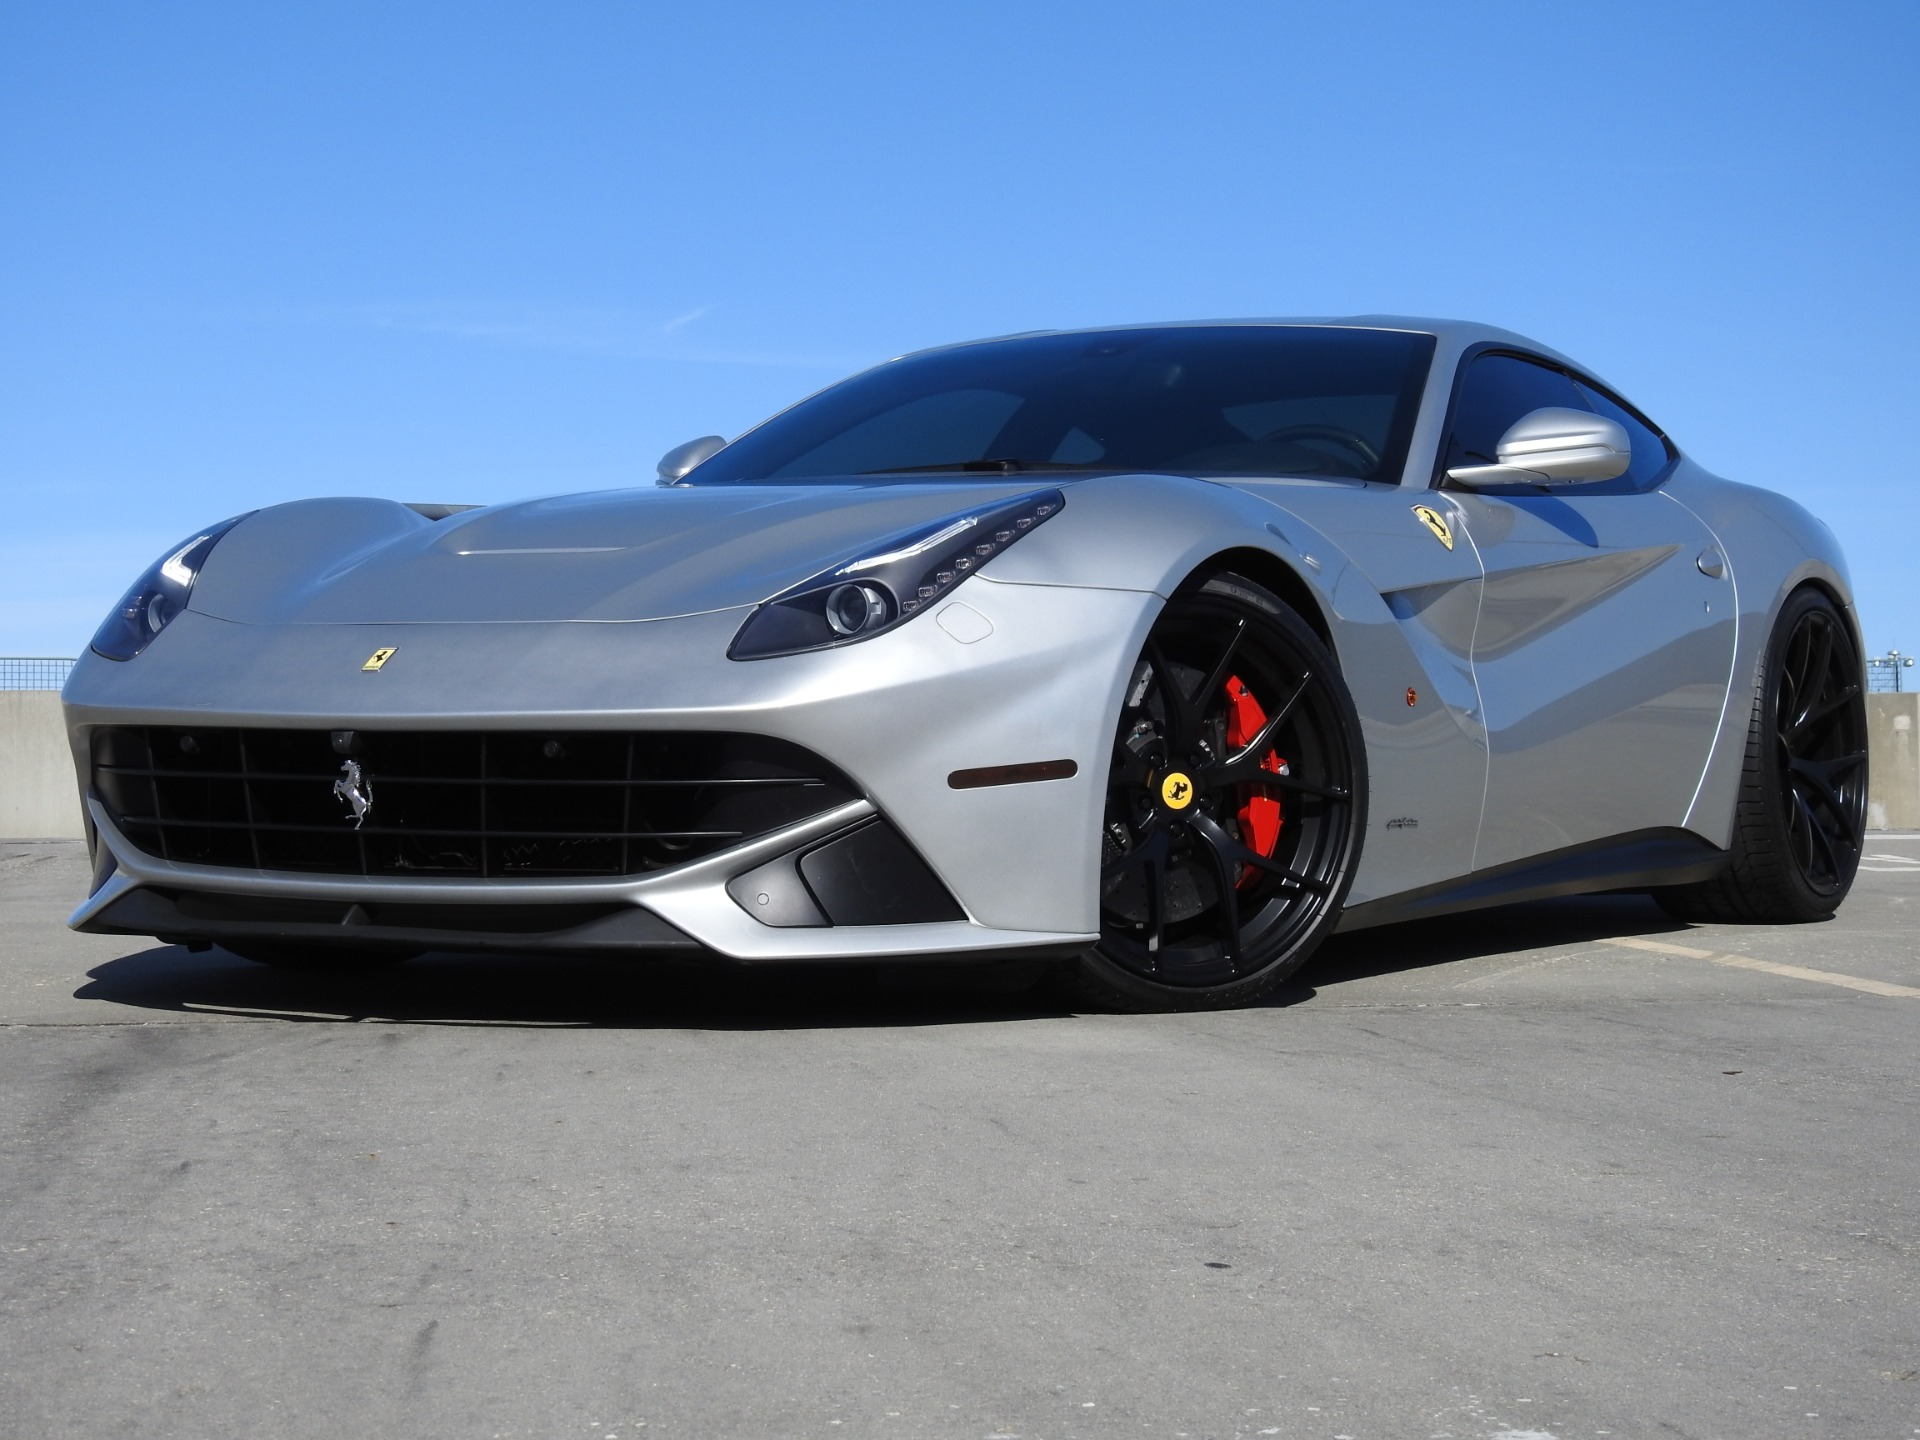 Used-2016-Ferrari-F12-berlinetta-for-sale-Jackson-MS